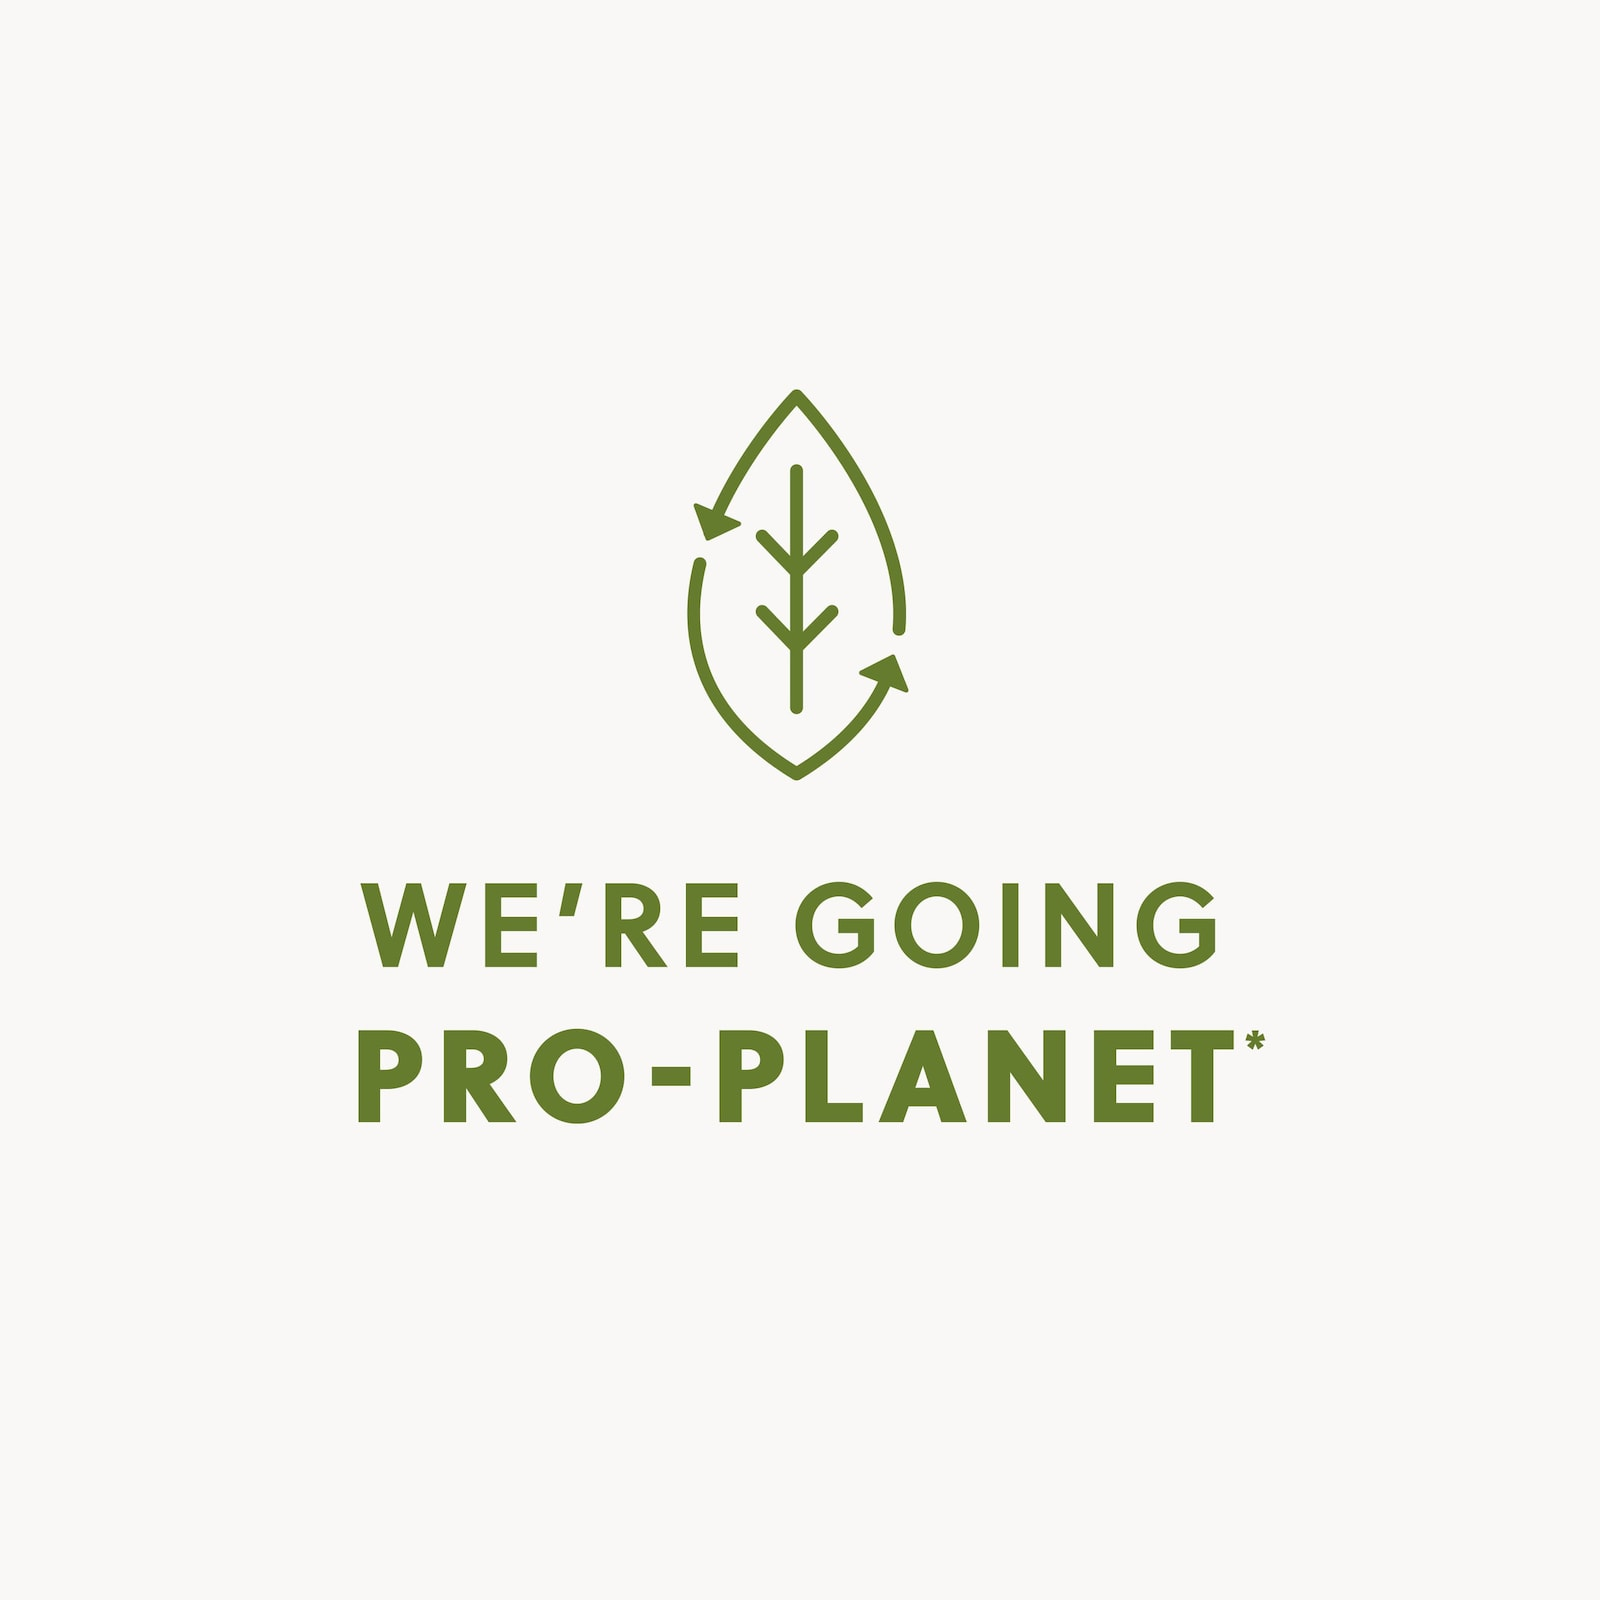 We're Going Pro-Planet